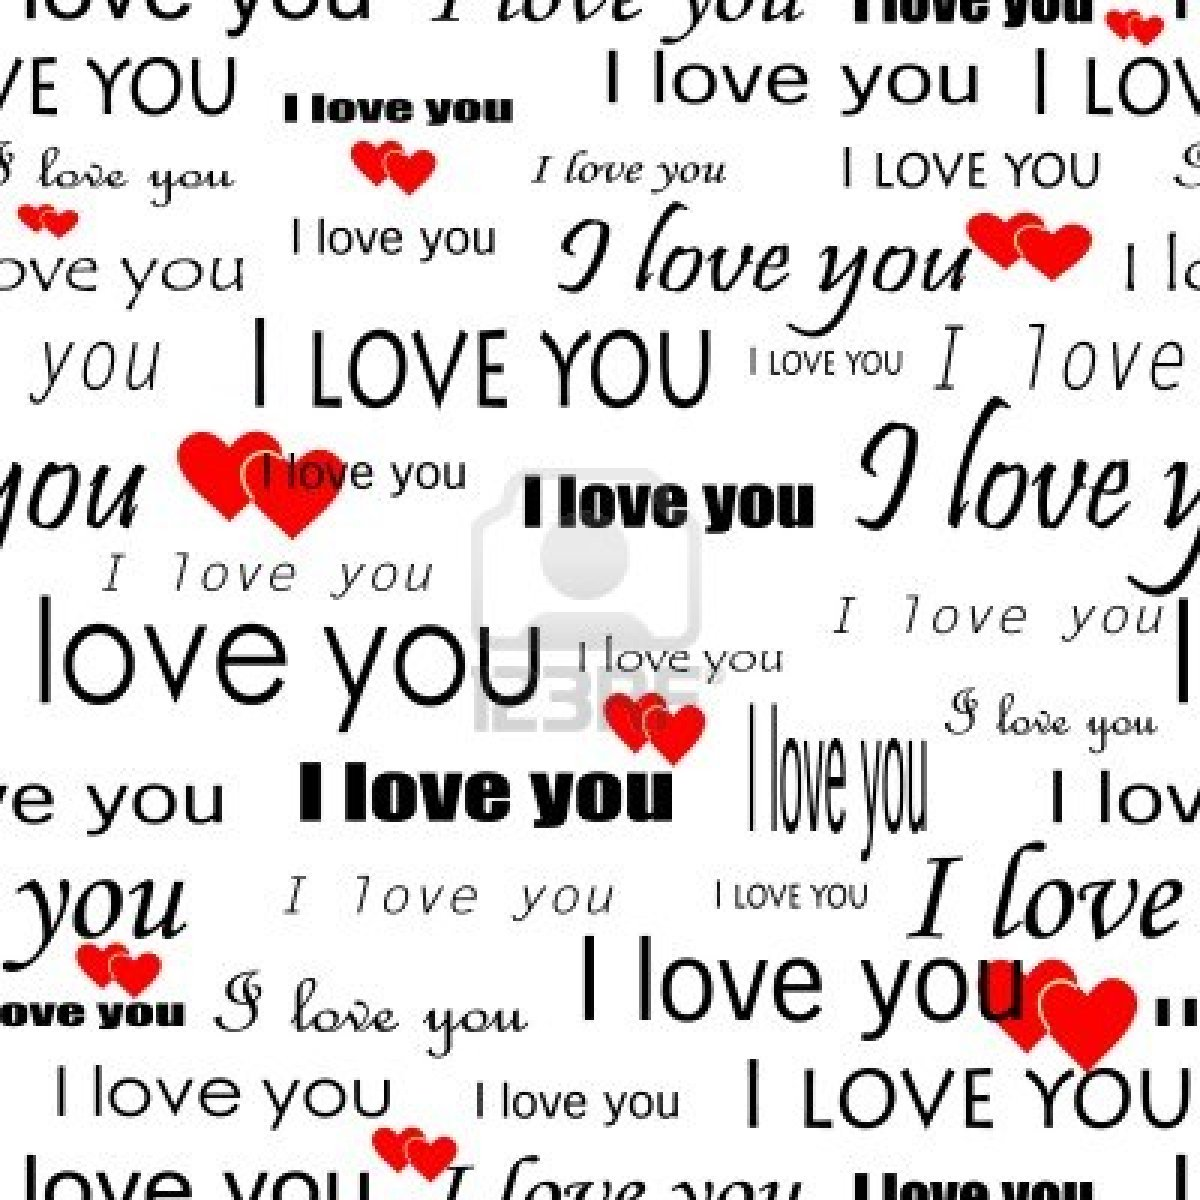 ... -wallpaper-valentine-with-hearts-and-superscription-i-love-you.jpg